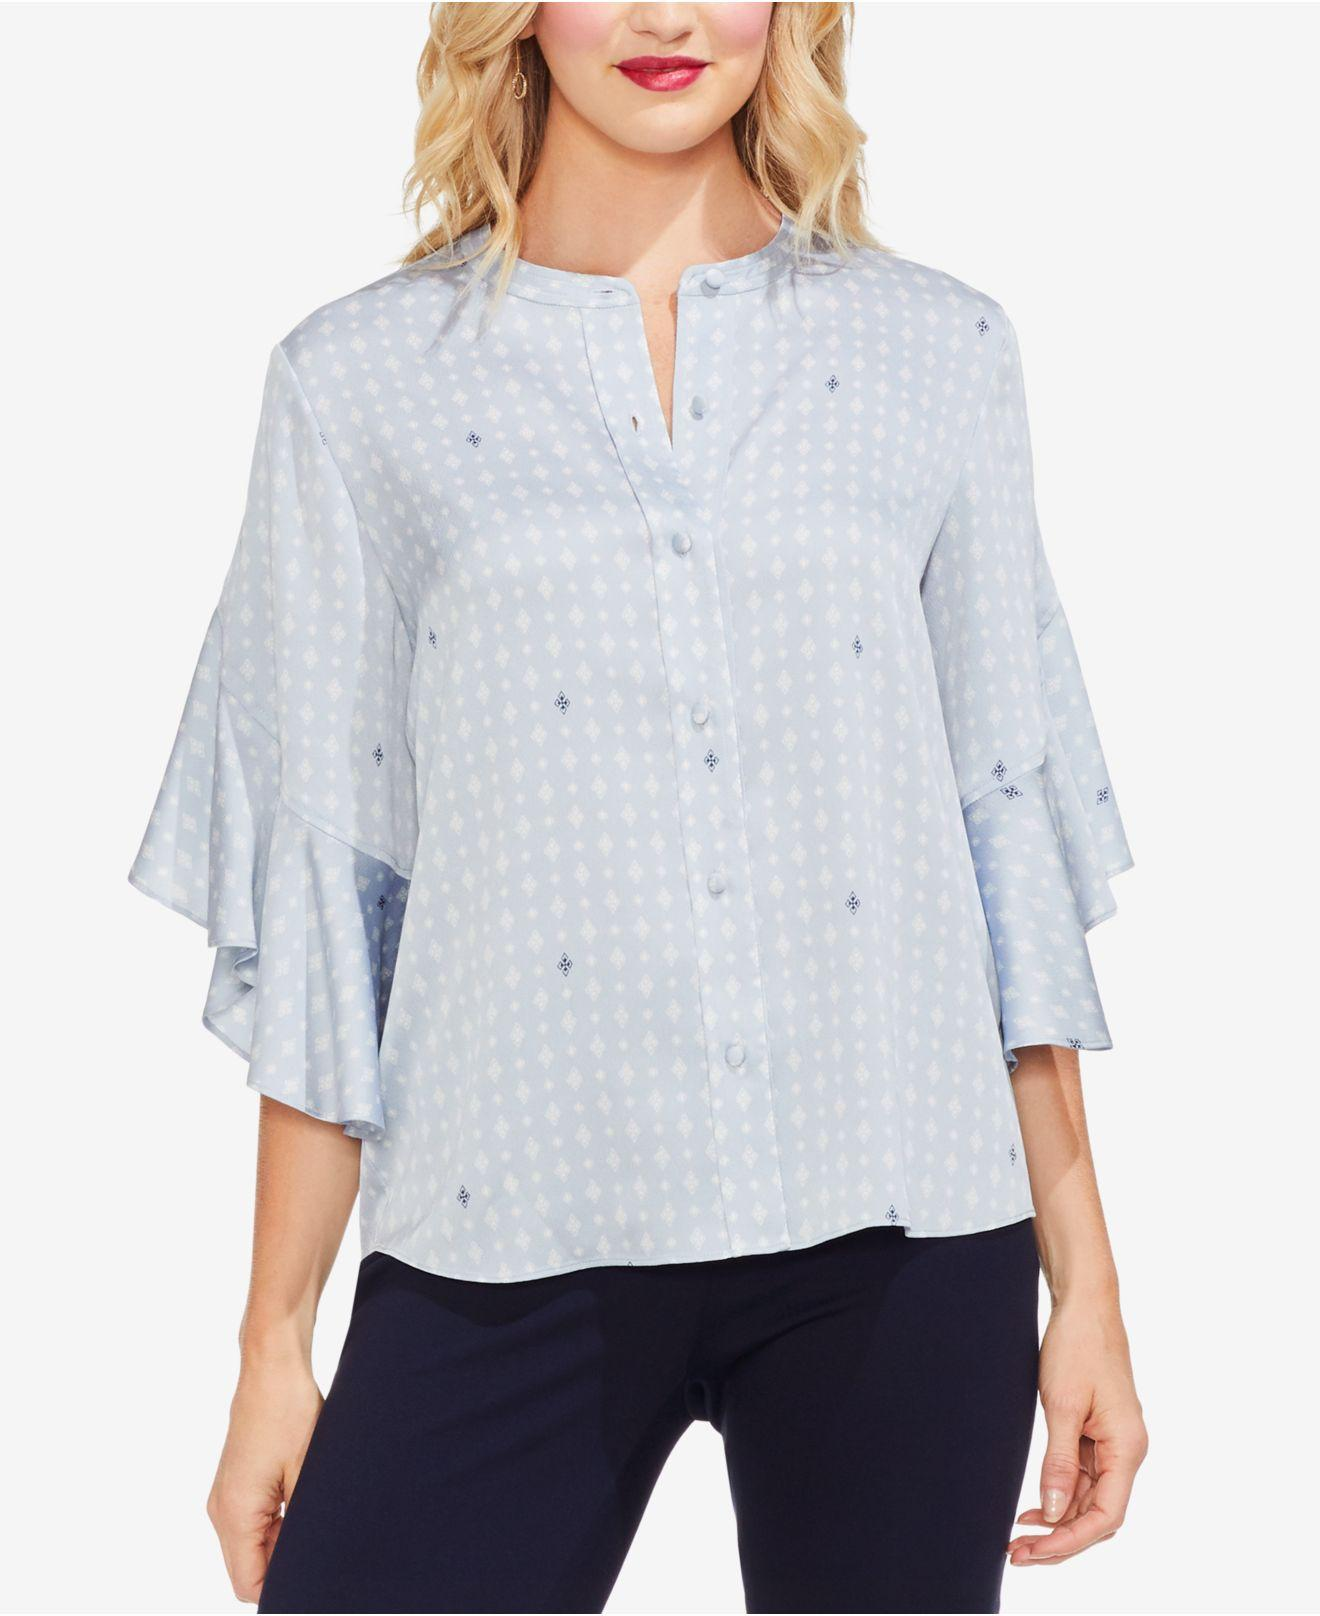 c5c67a1b869bd3 Vince Camuto. Women s Blue Ruffle-sleeve Blouse.  89  53 From Macy s